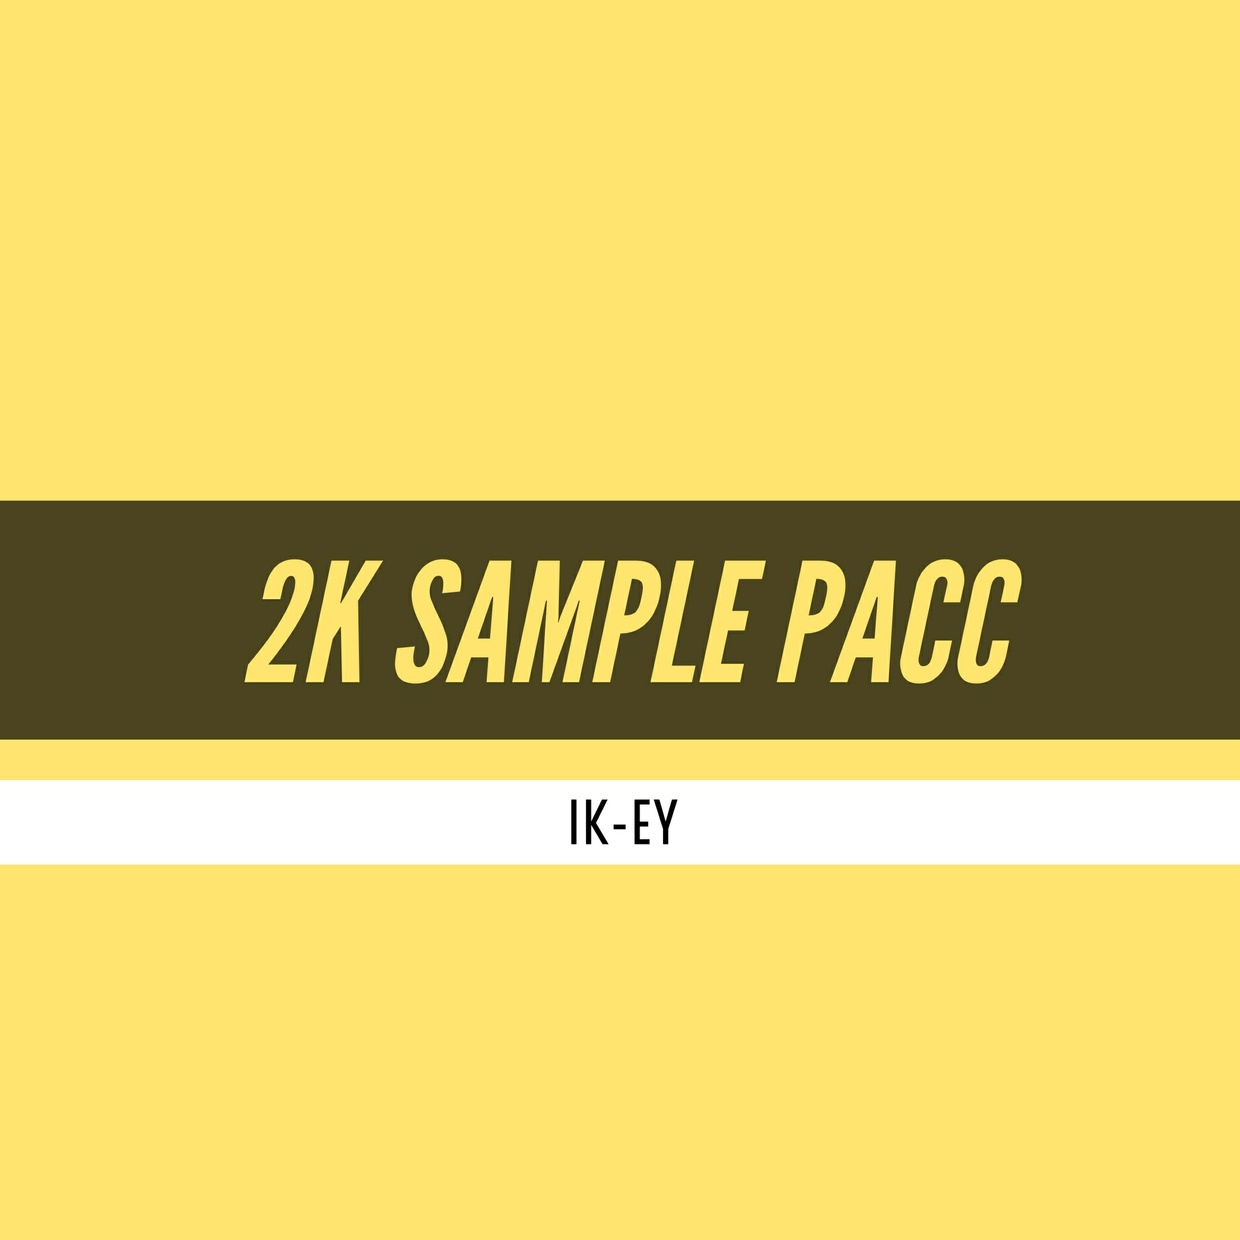 IK-EY 2K SAMPLE PACC